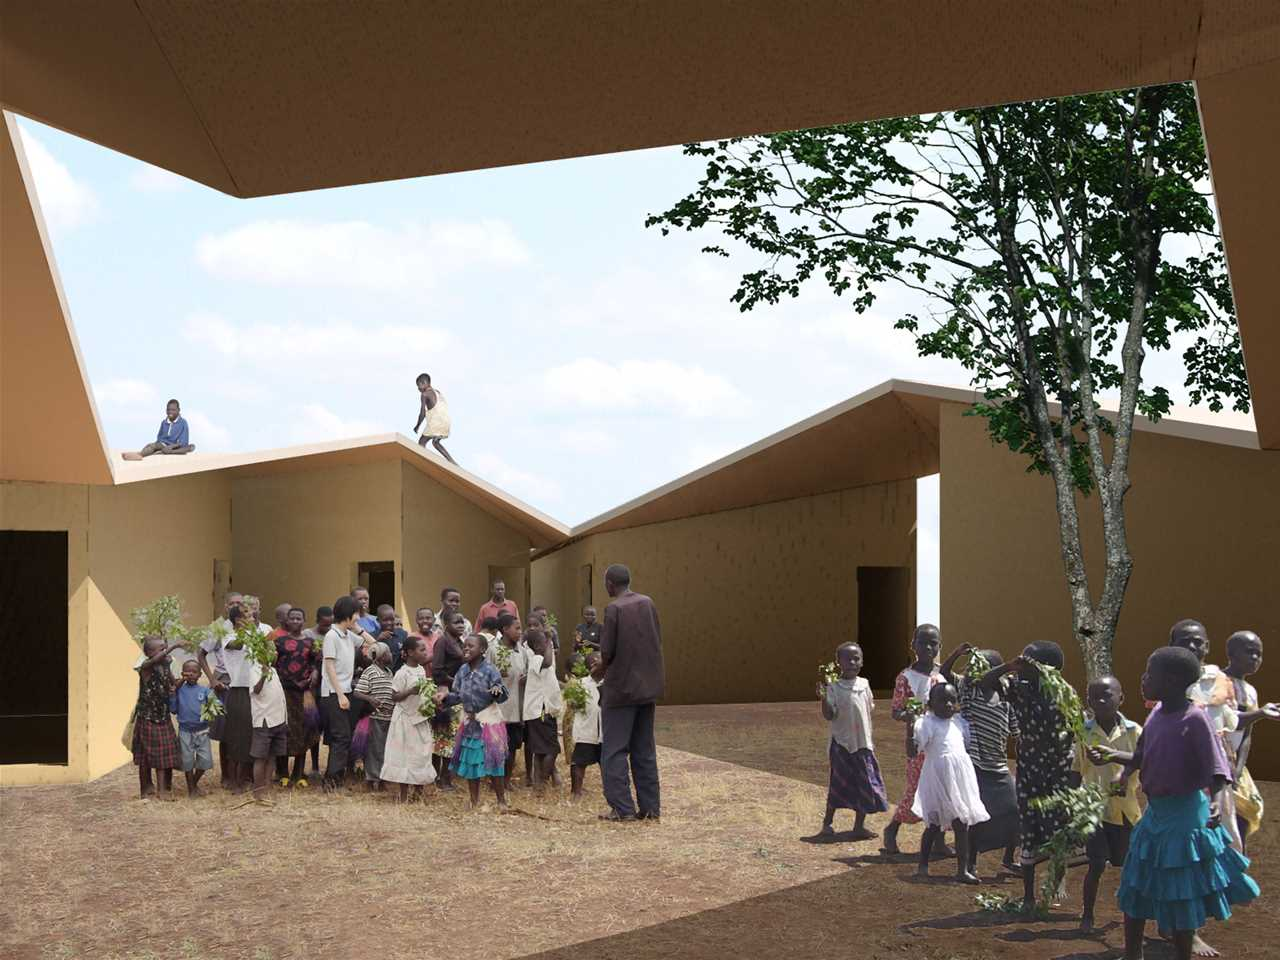 Global Finalist 2009: Low-cost school and home for HIV orphans, Rakai, Uganda